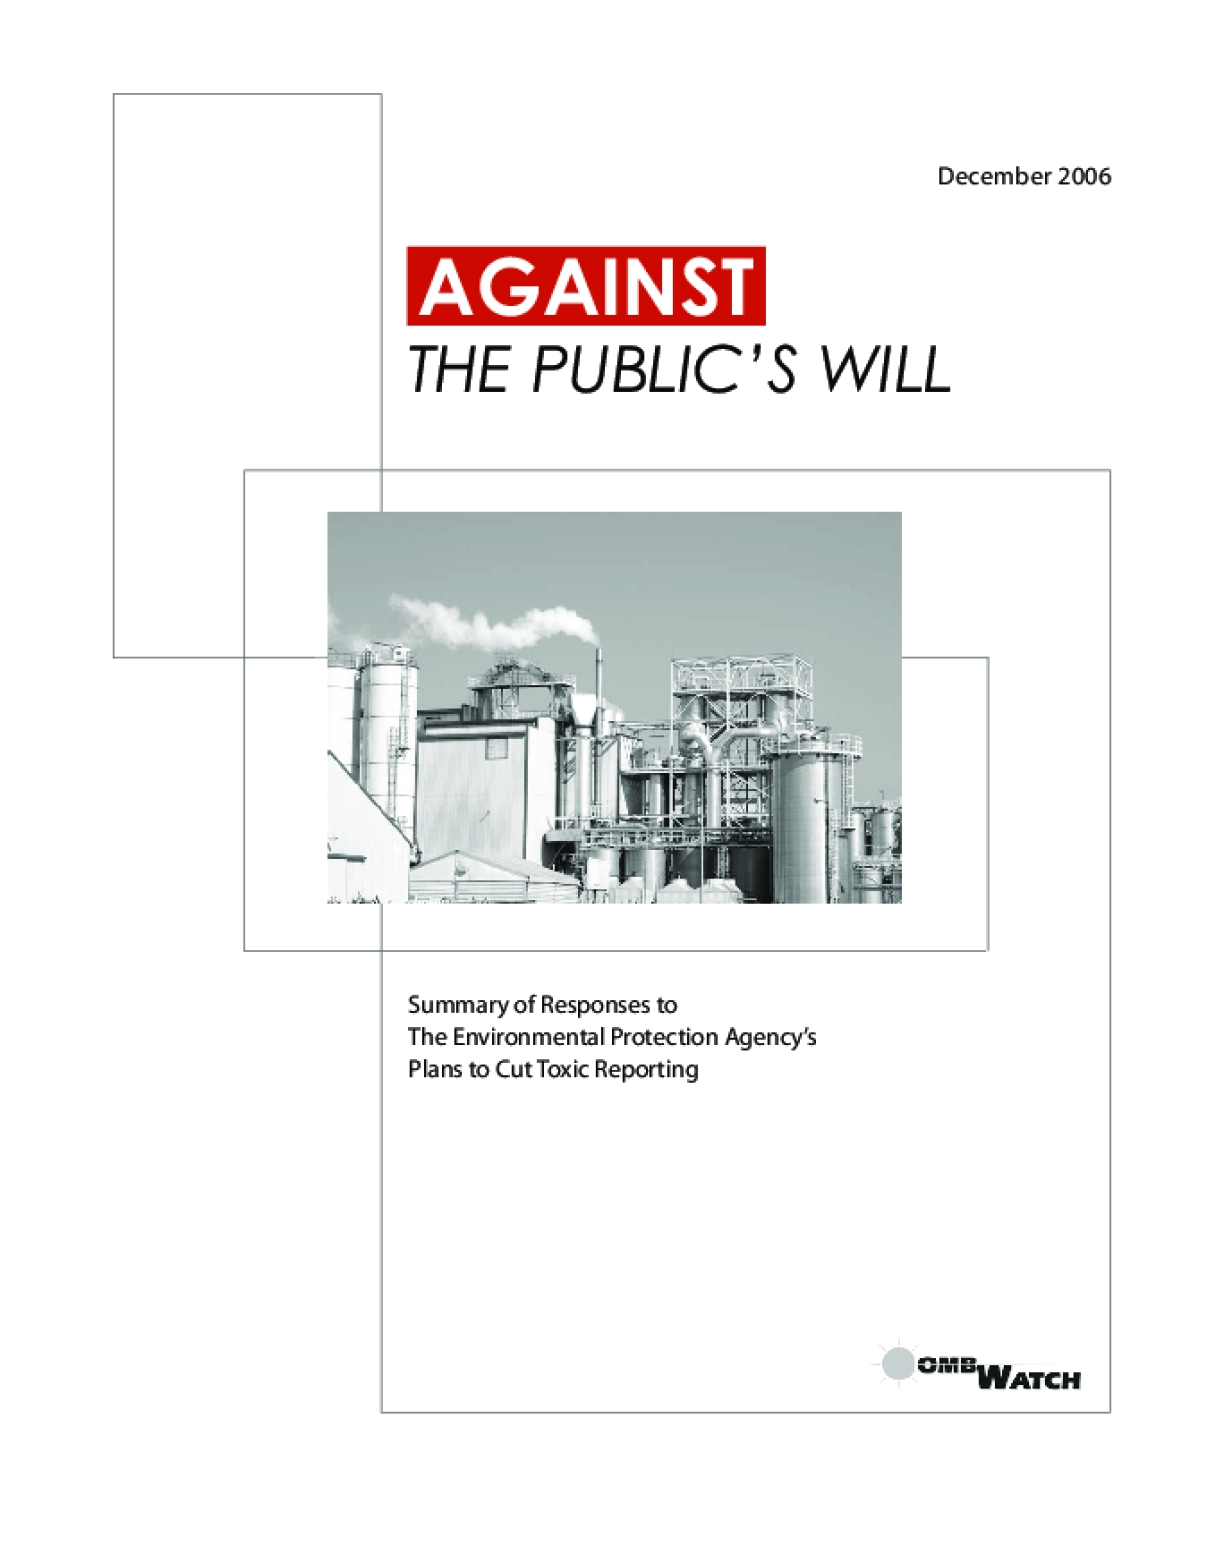 Against the Public's Will